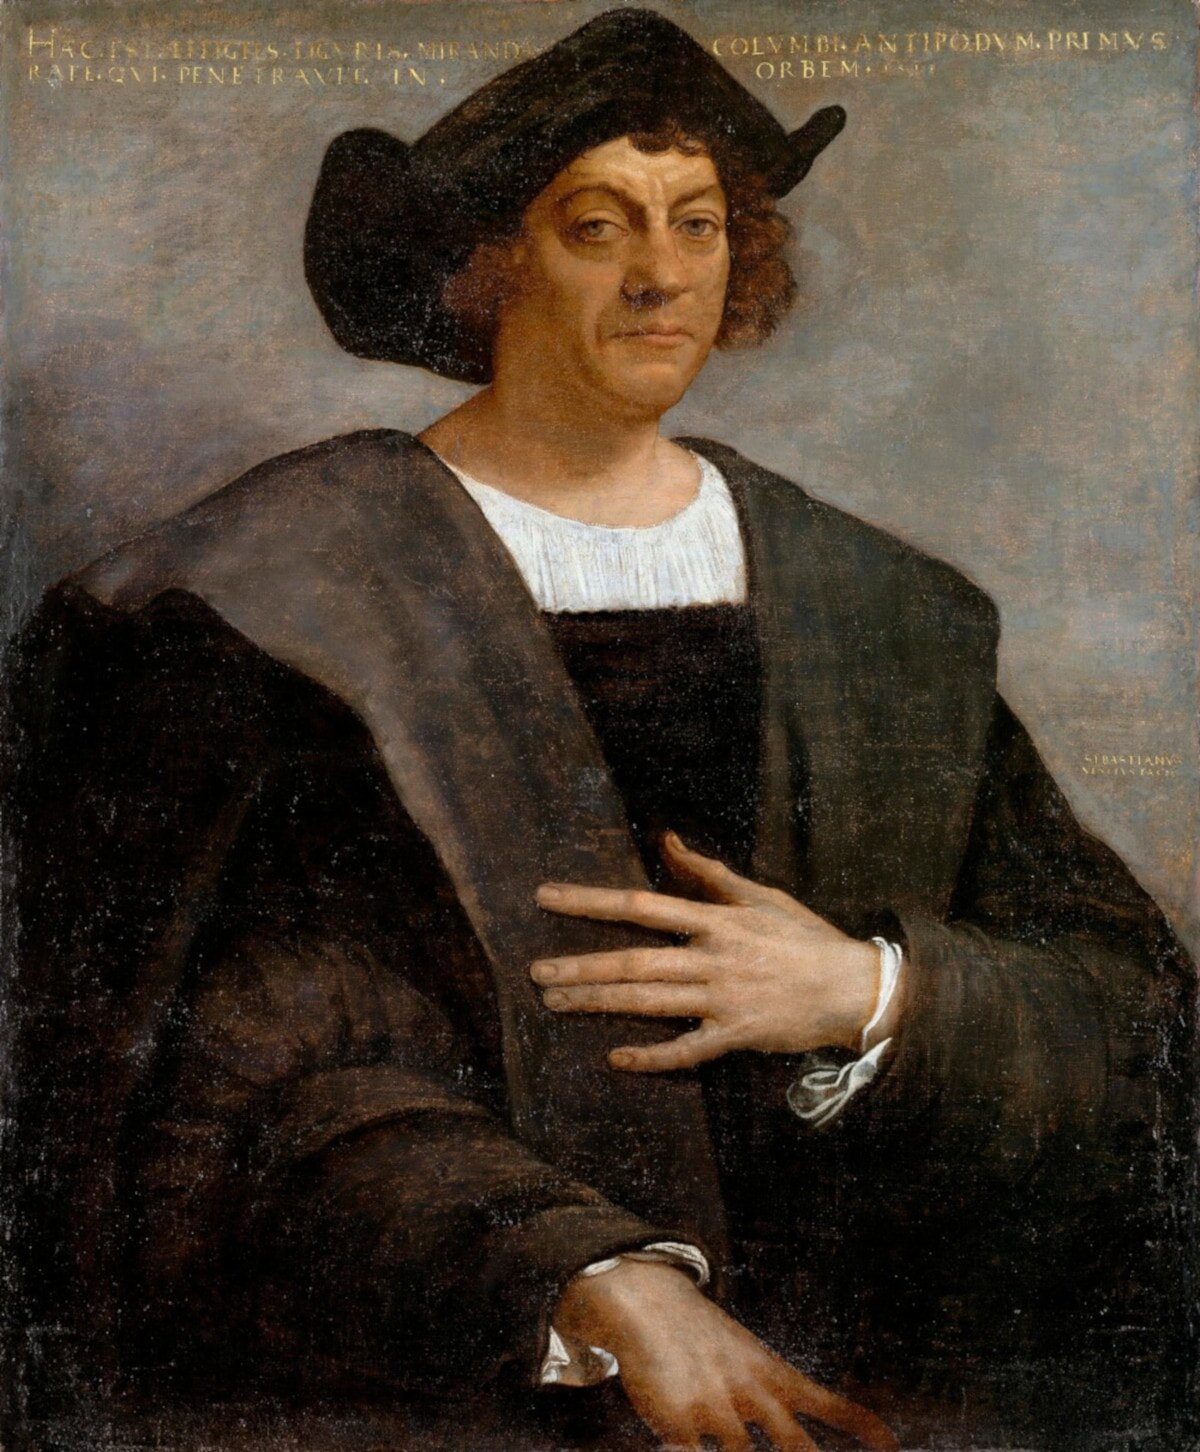 Columbus is one of the best-known world explorers from history.